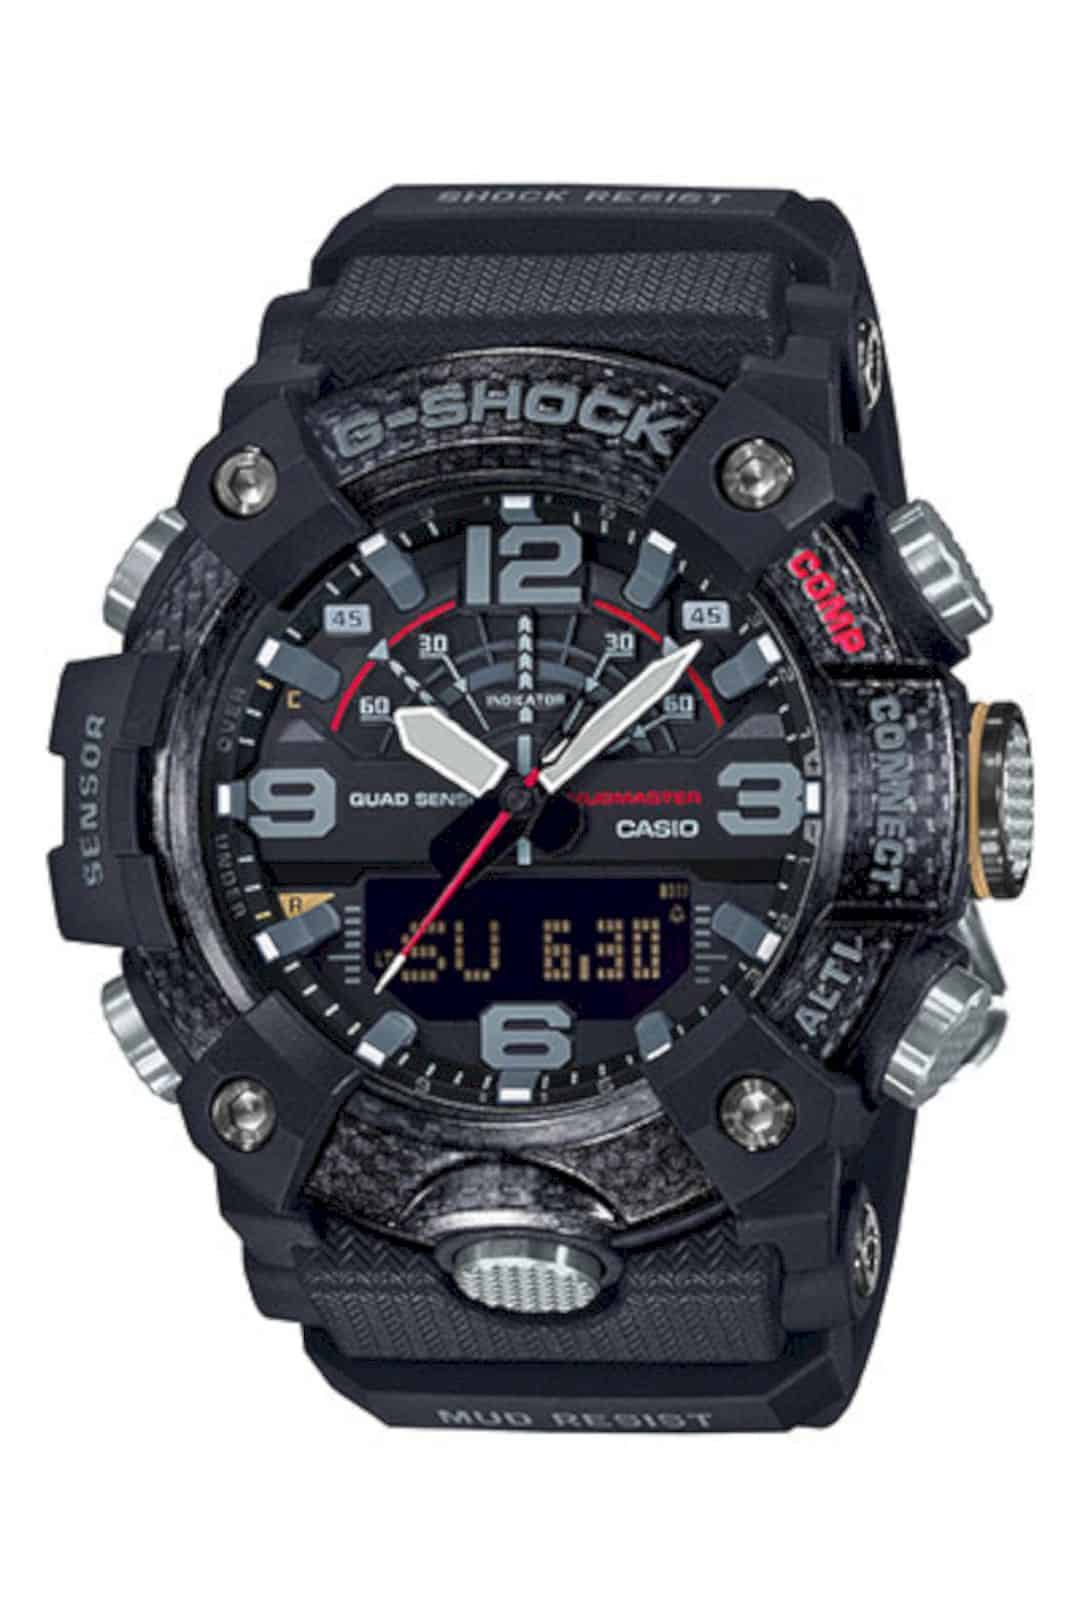 G Shock Carbon Core Guard Mudmaster GG B100 3